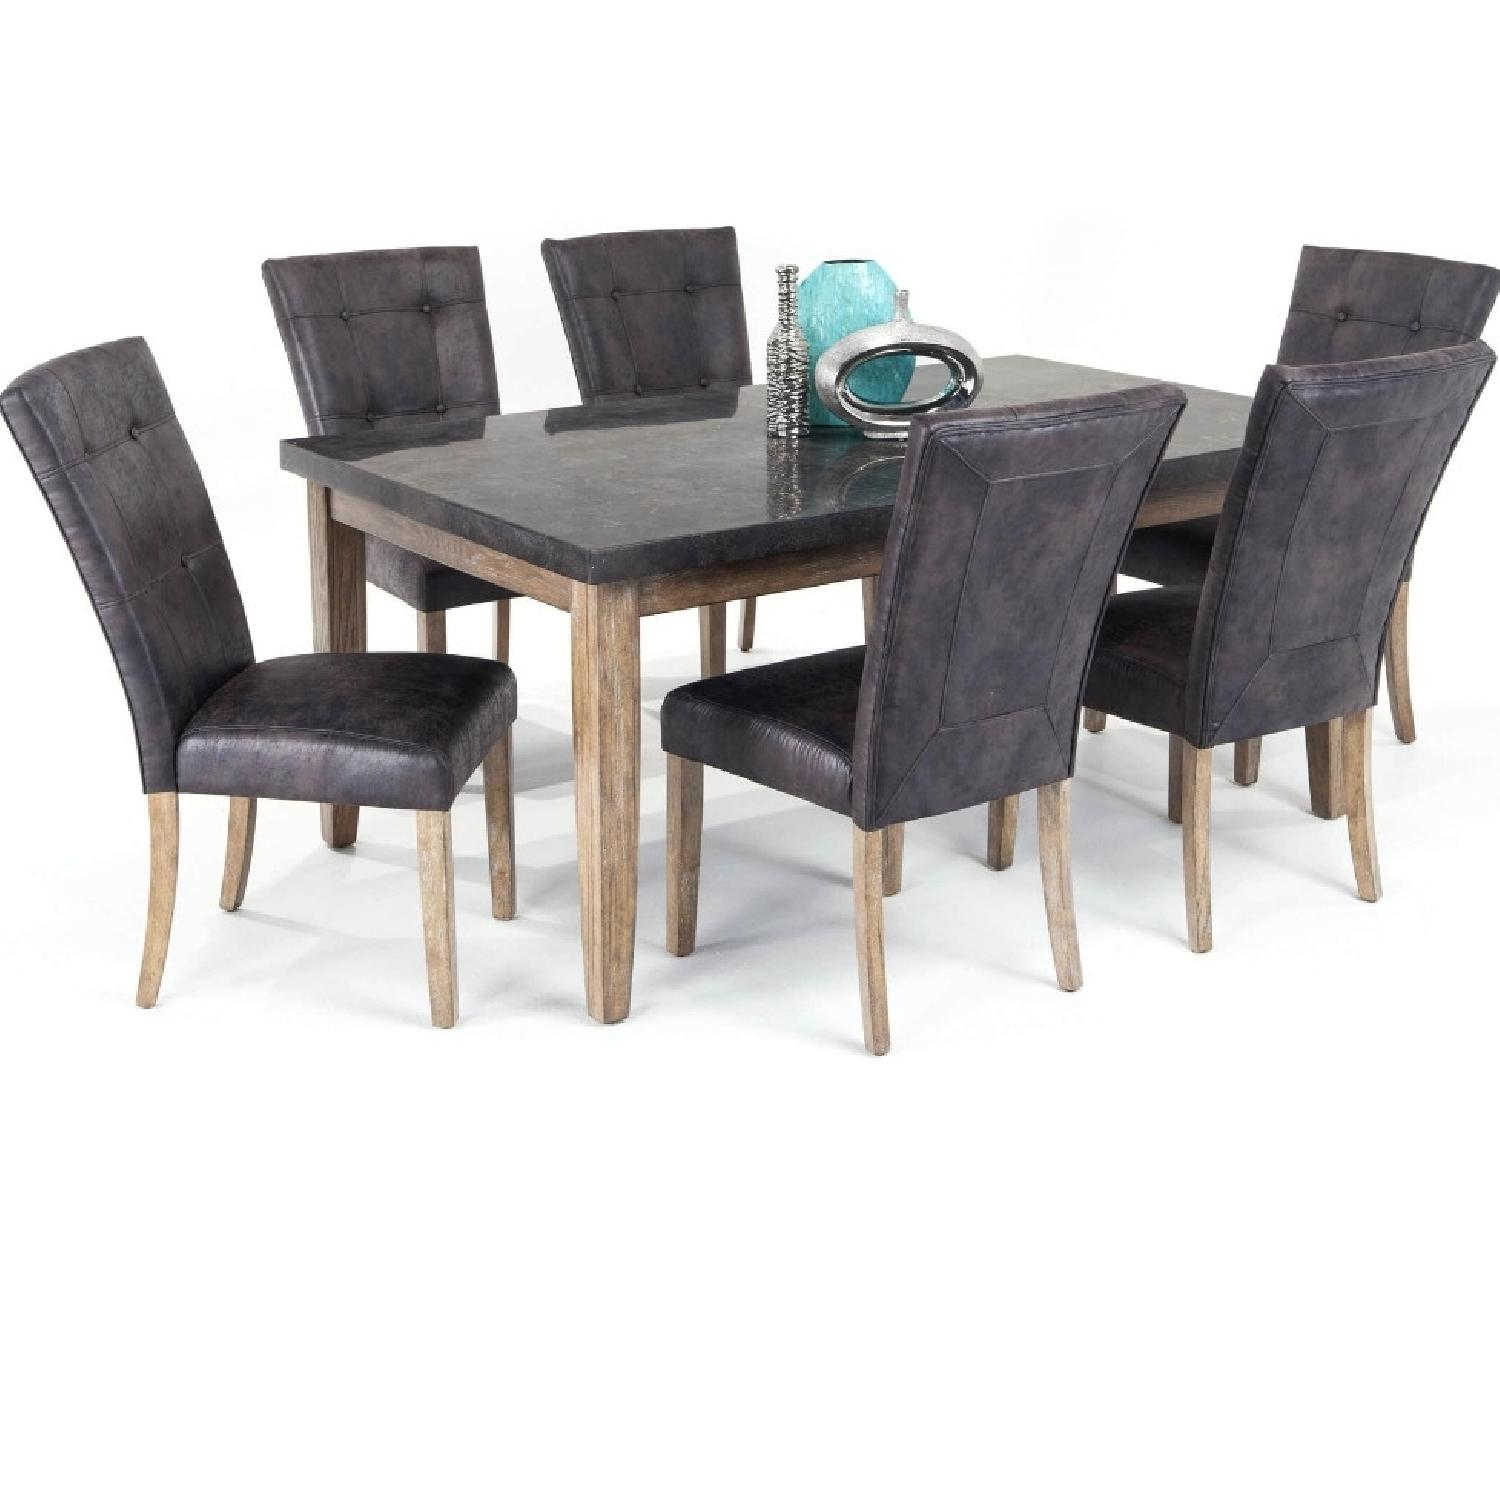 Bob's Discount Granite Table Dining Set with 6 Chairs - image-7